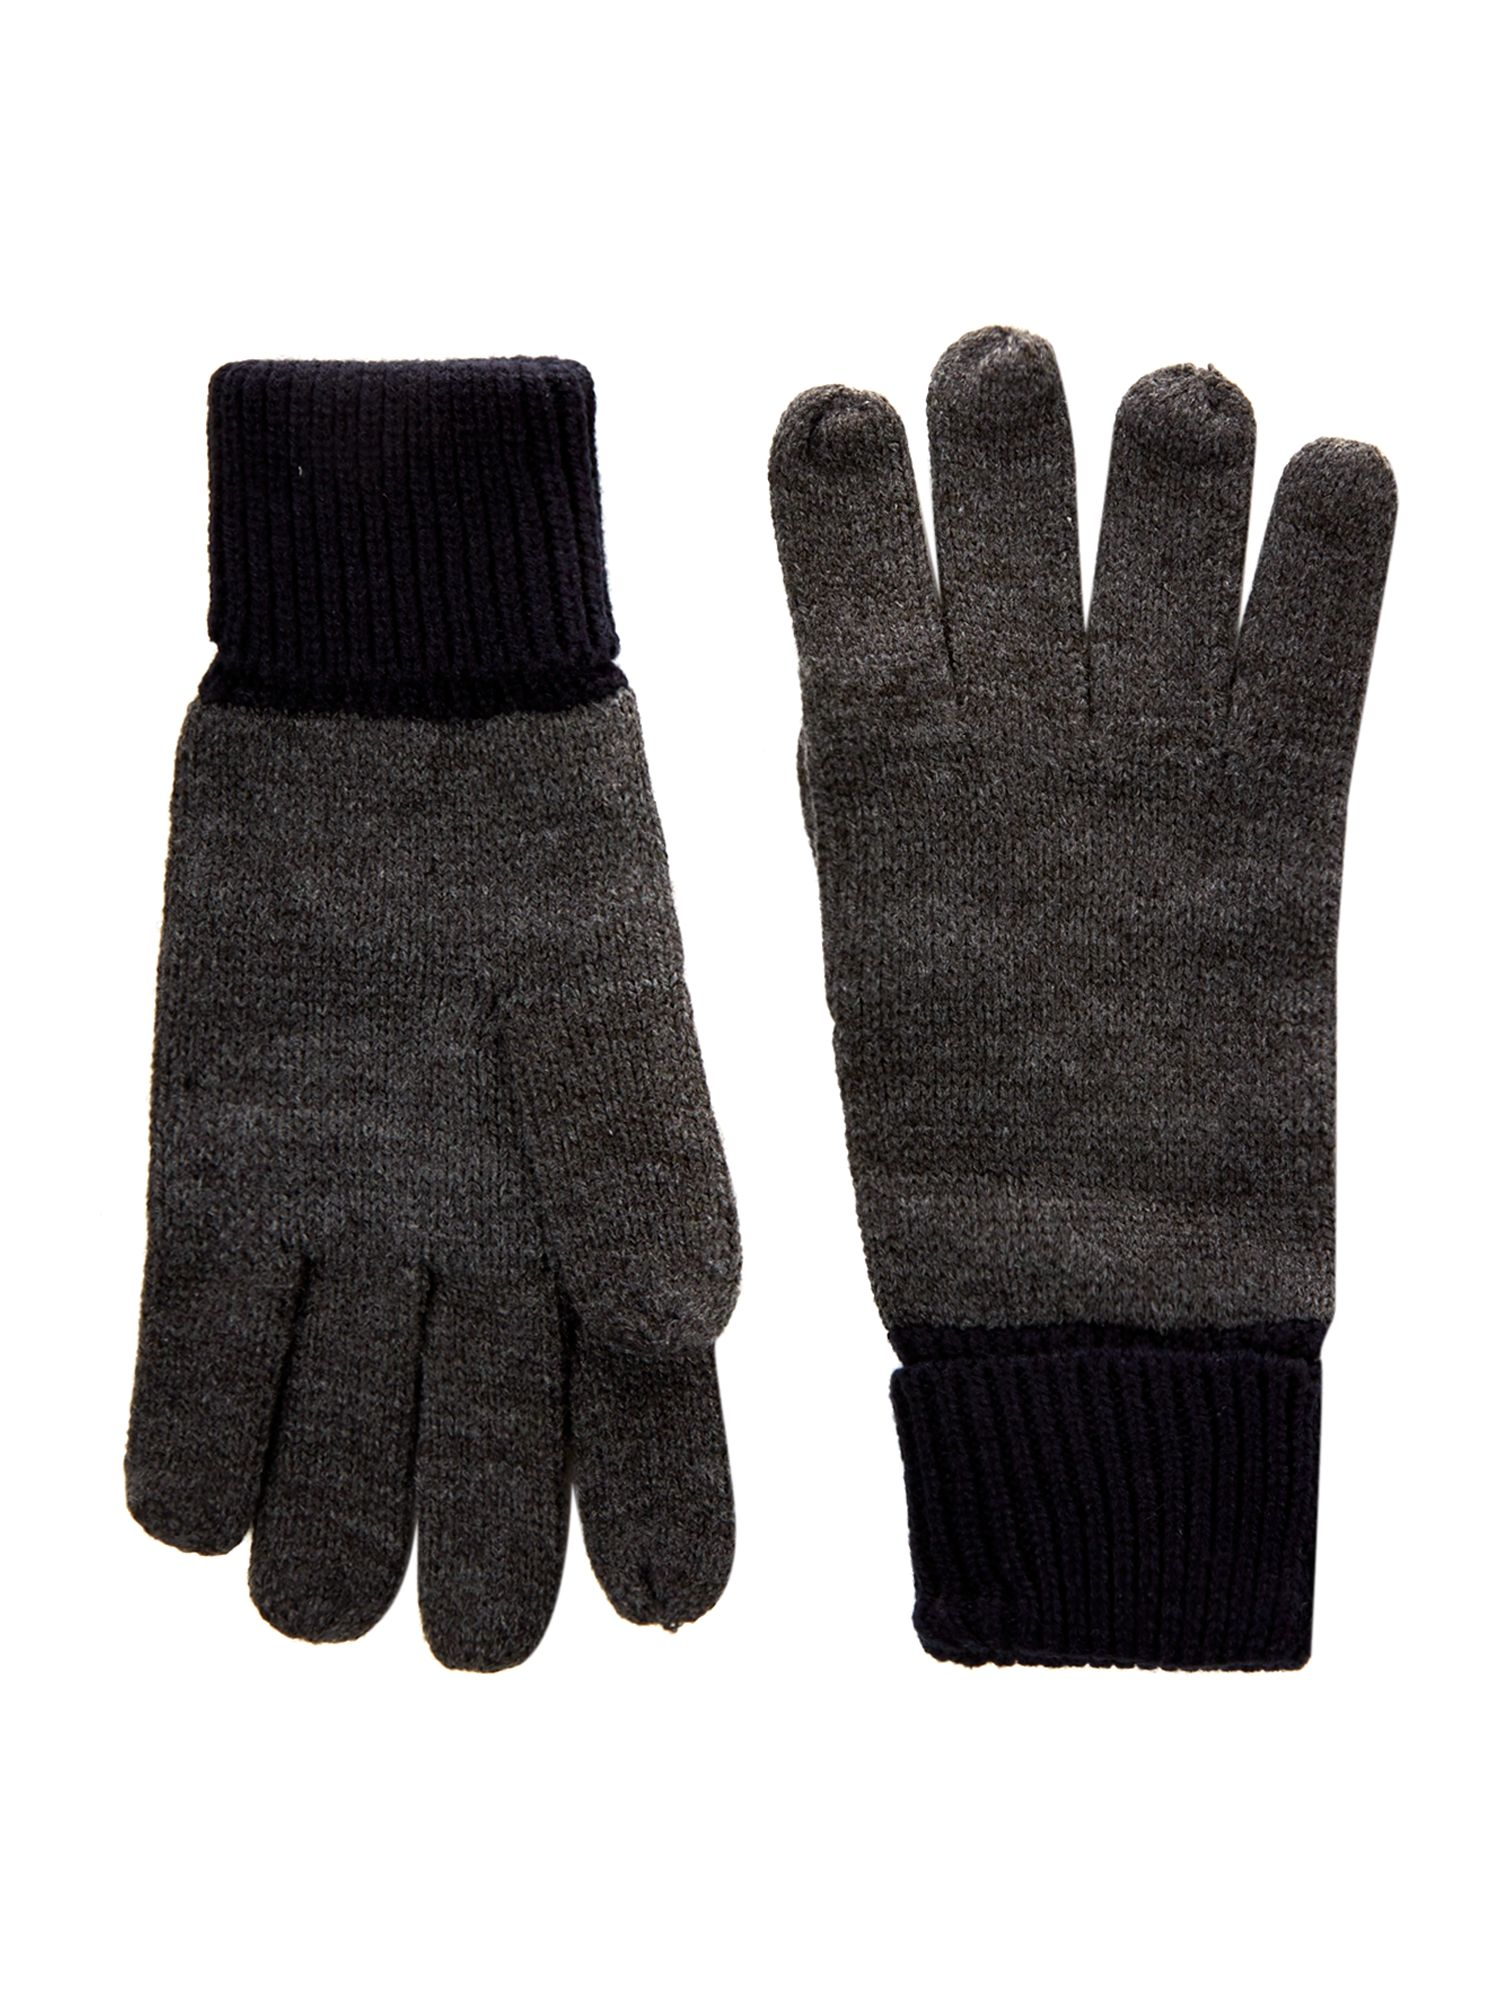 Contrast cuff gloves